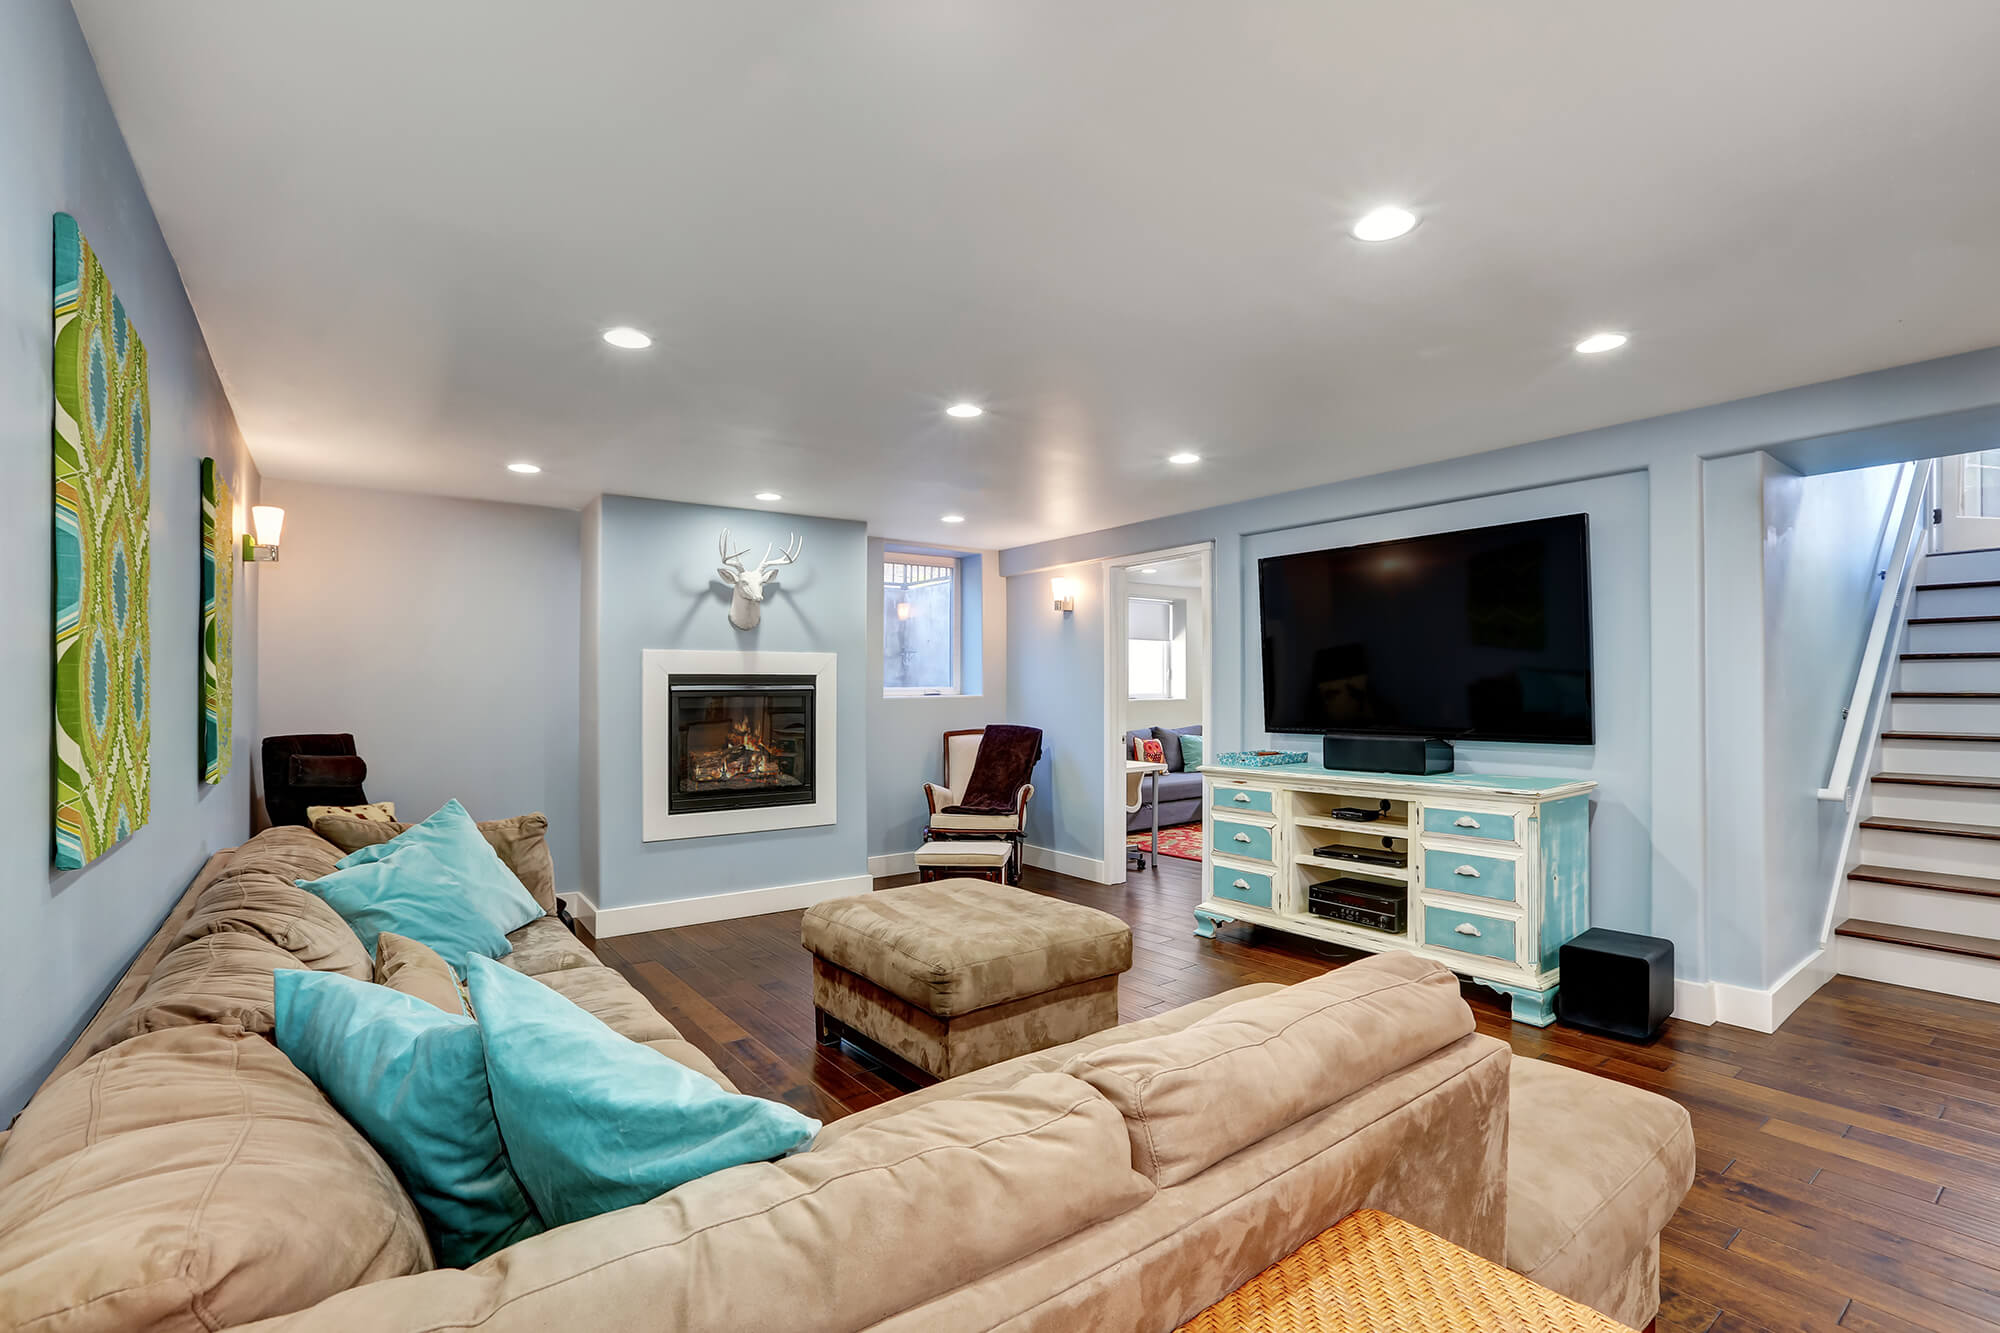 Pastel blue walls in basement living room interior. Large corner sofa with blue pillows and ottoman. Vintage white and blue TV cabinet.